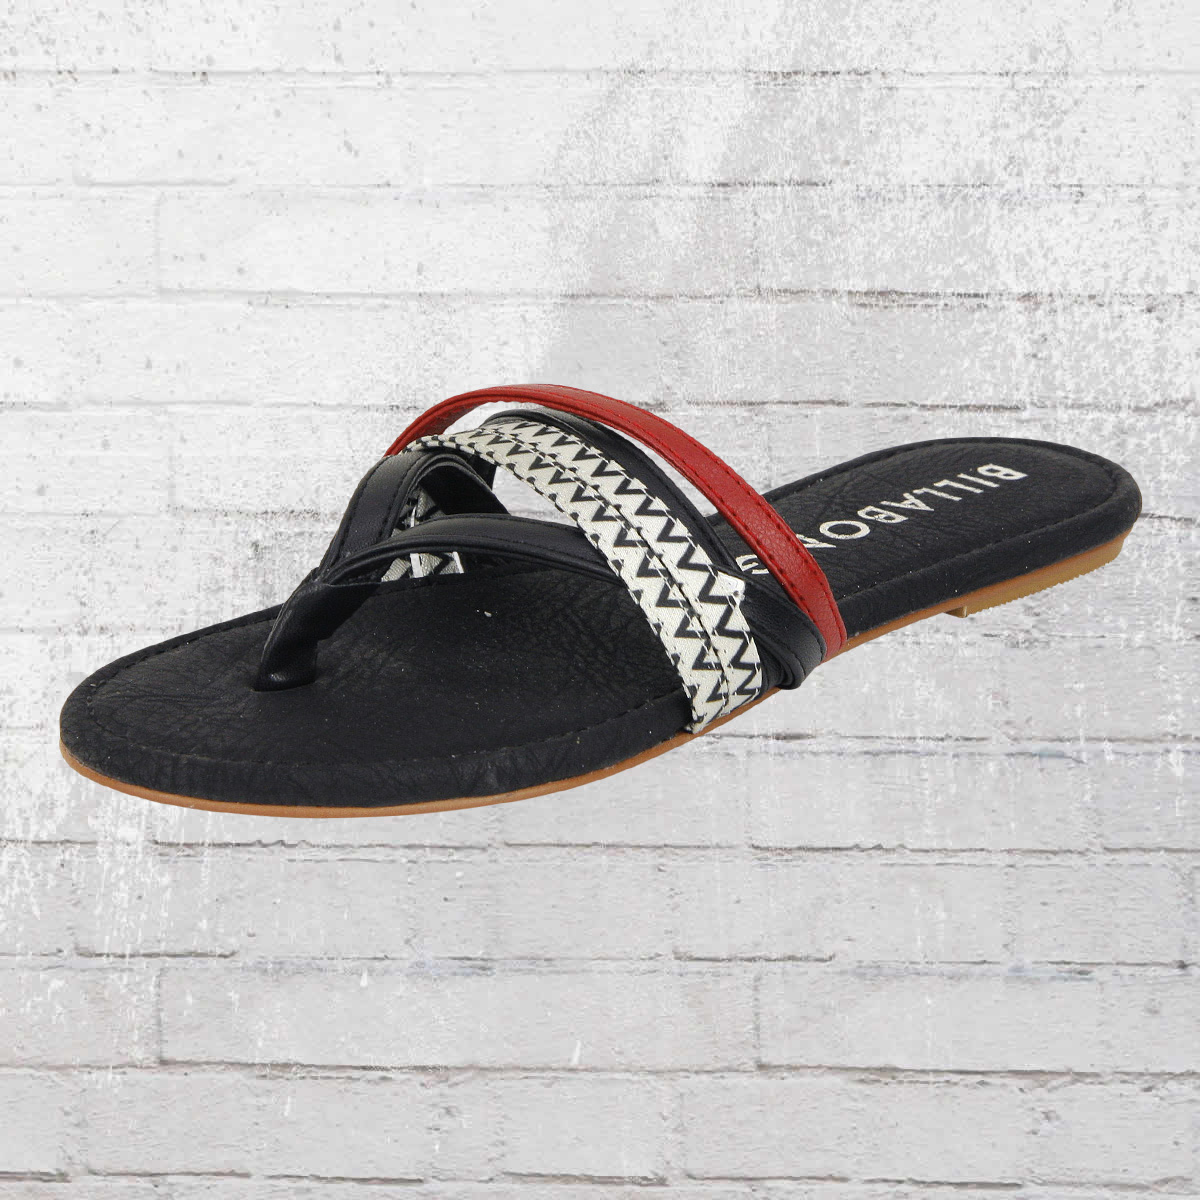 9f38daaa3186 Order now   Billabong Women Benito Thongs black